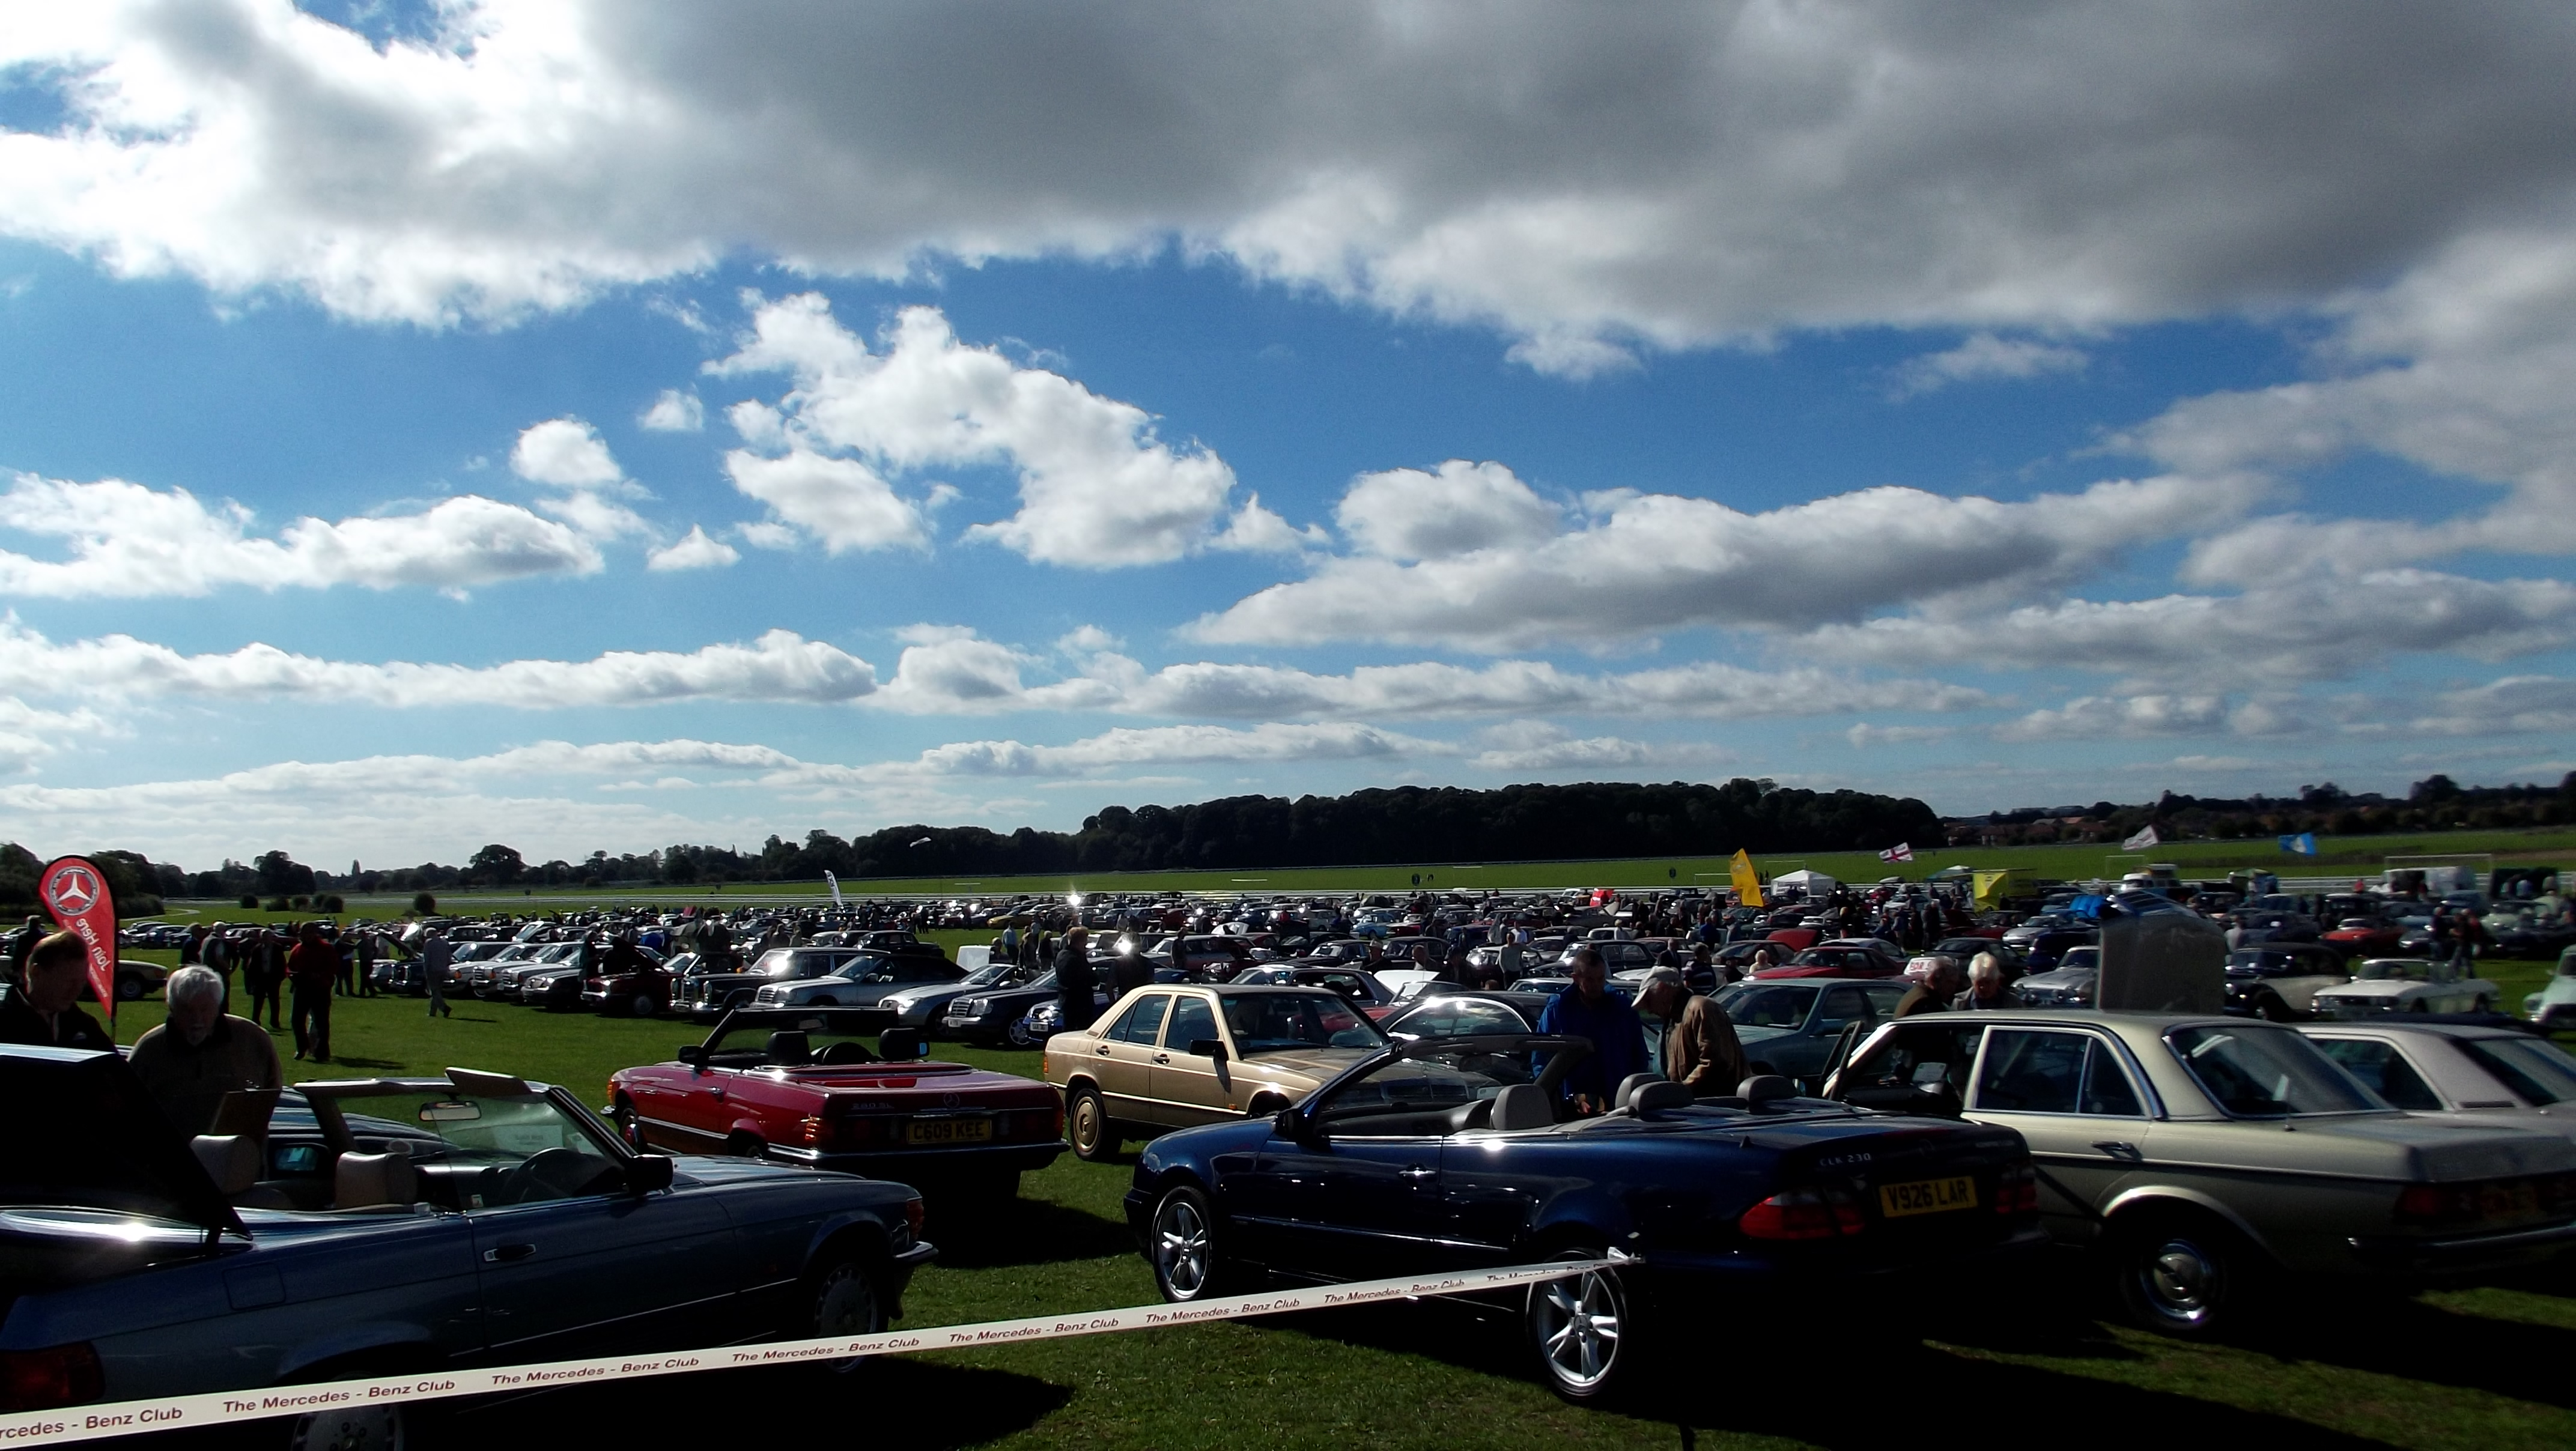 FileYork Race Course Classic Car Show Jpg Wikimedia - Classic car show york